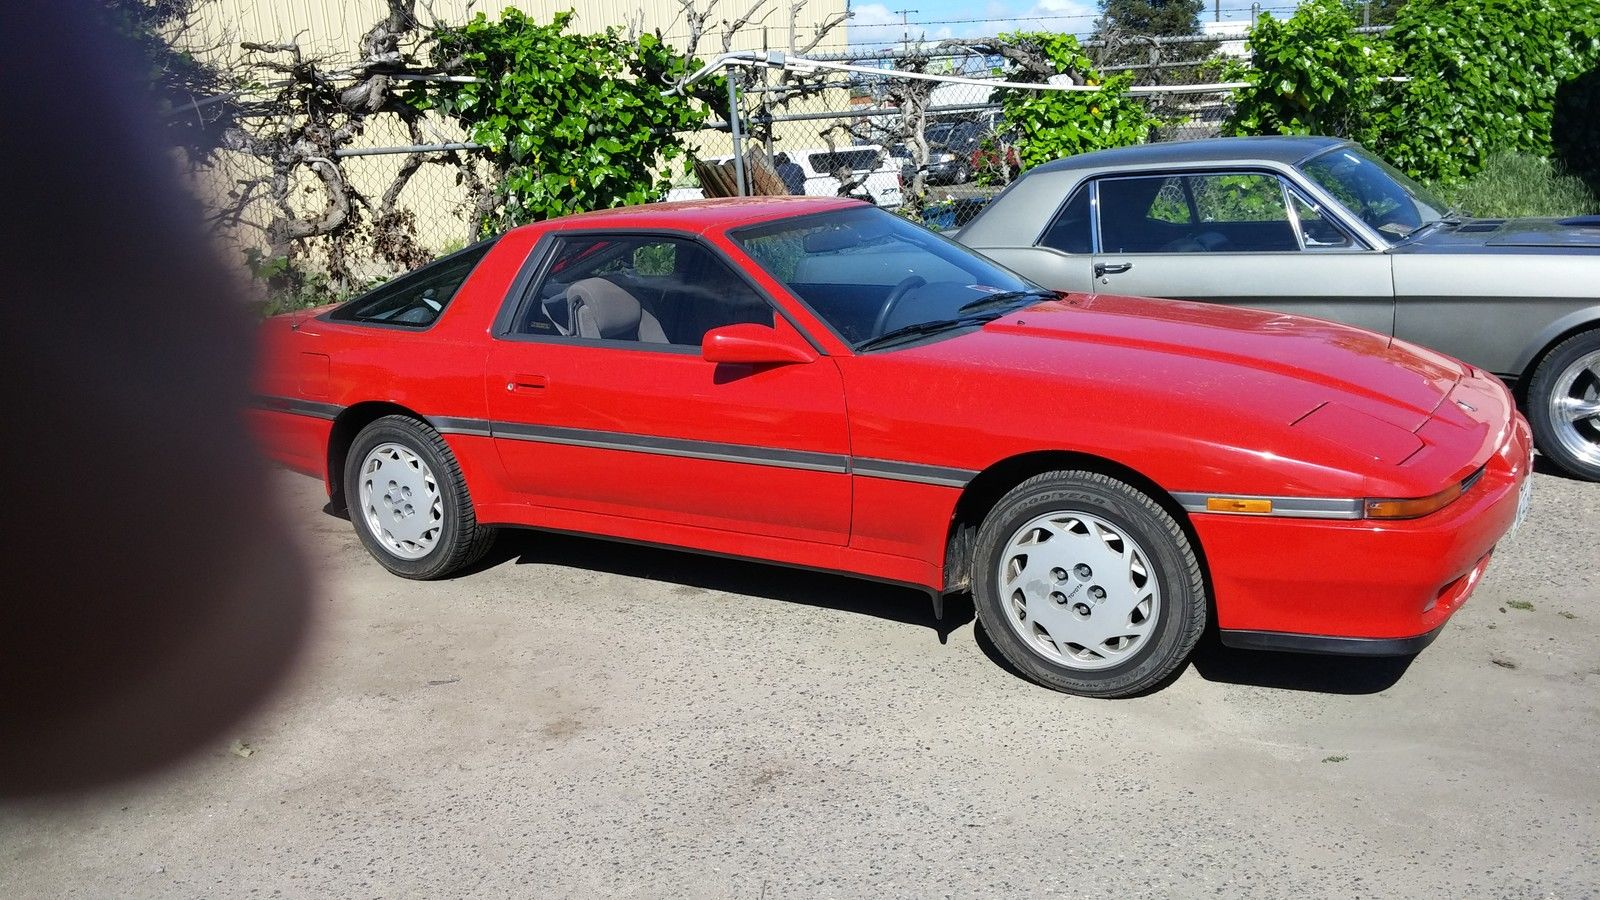 1989 Toyota Supra Sports Car For Sale